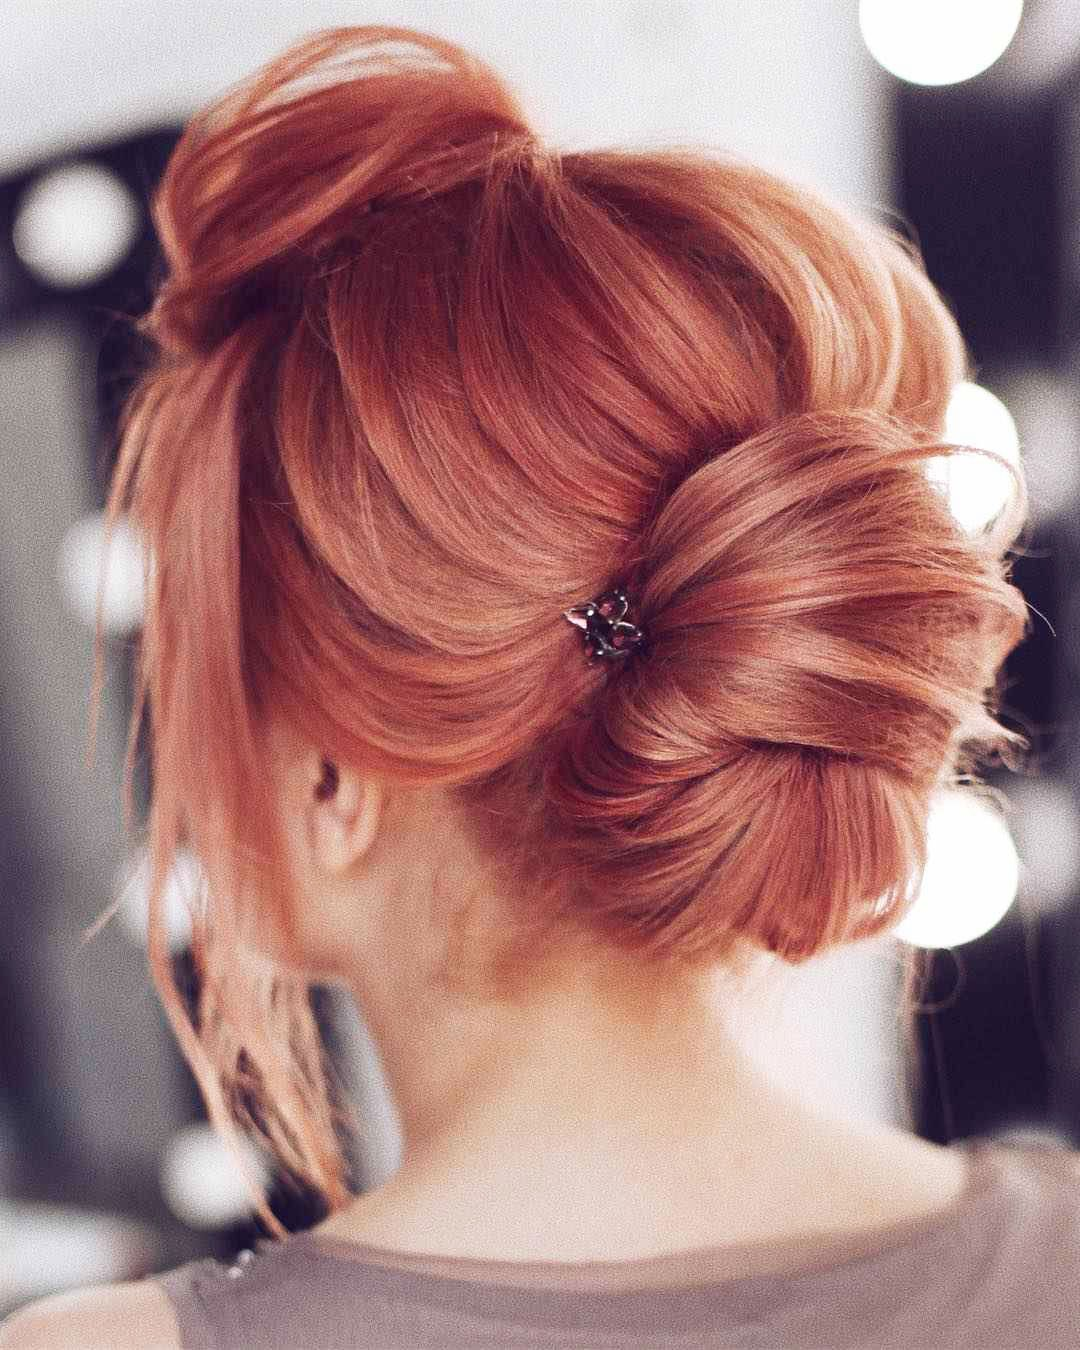 Hairstyles for prom for medium hair 2019-2020 photo 14